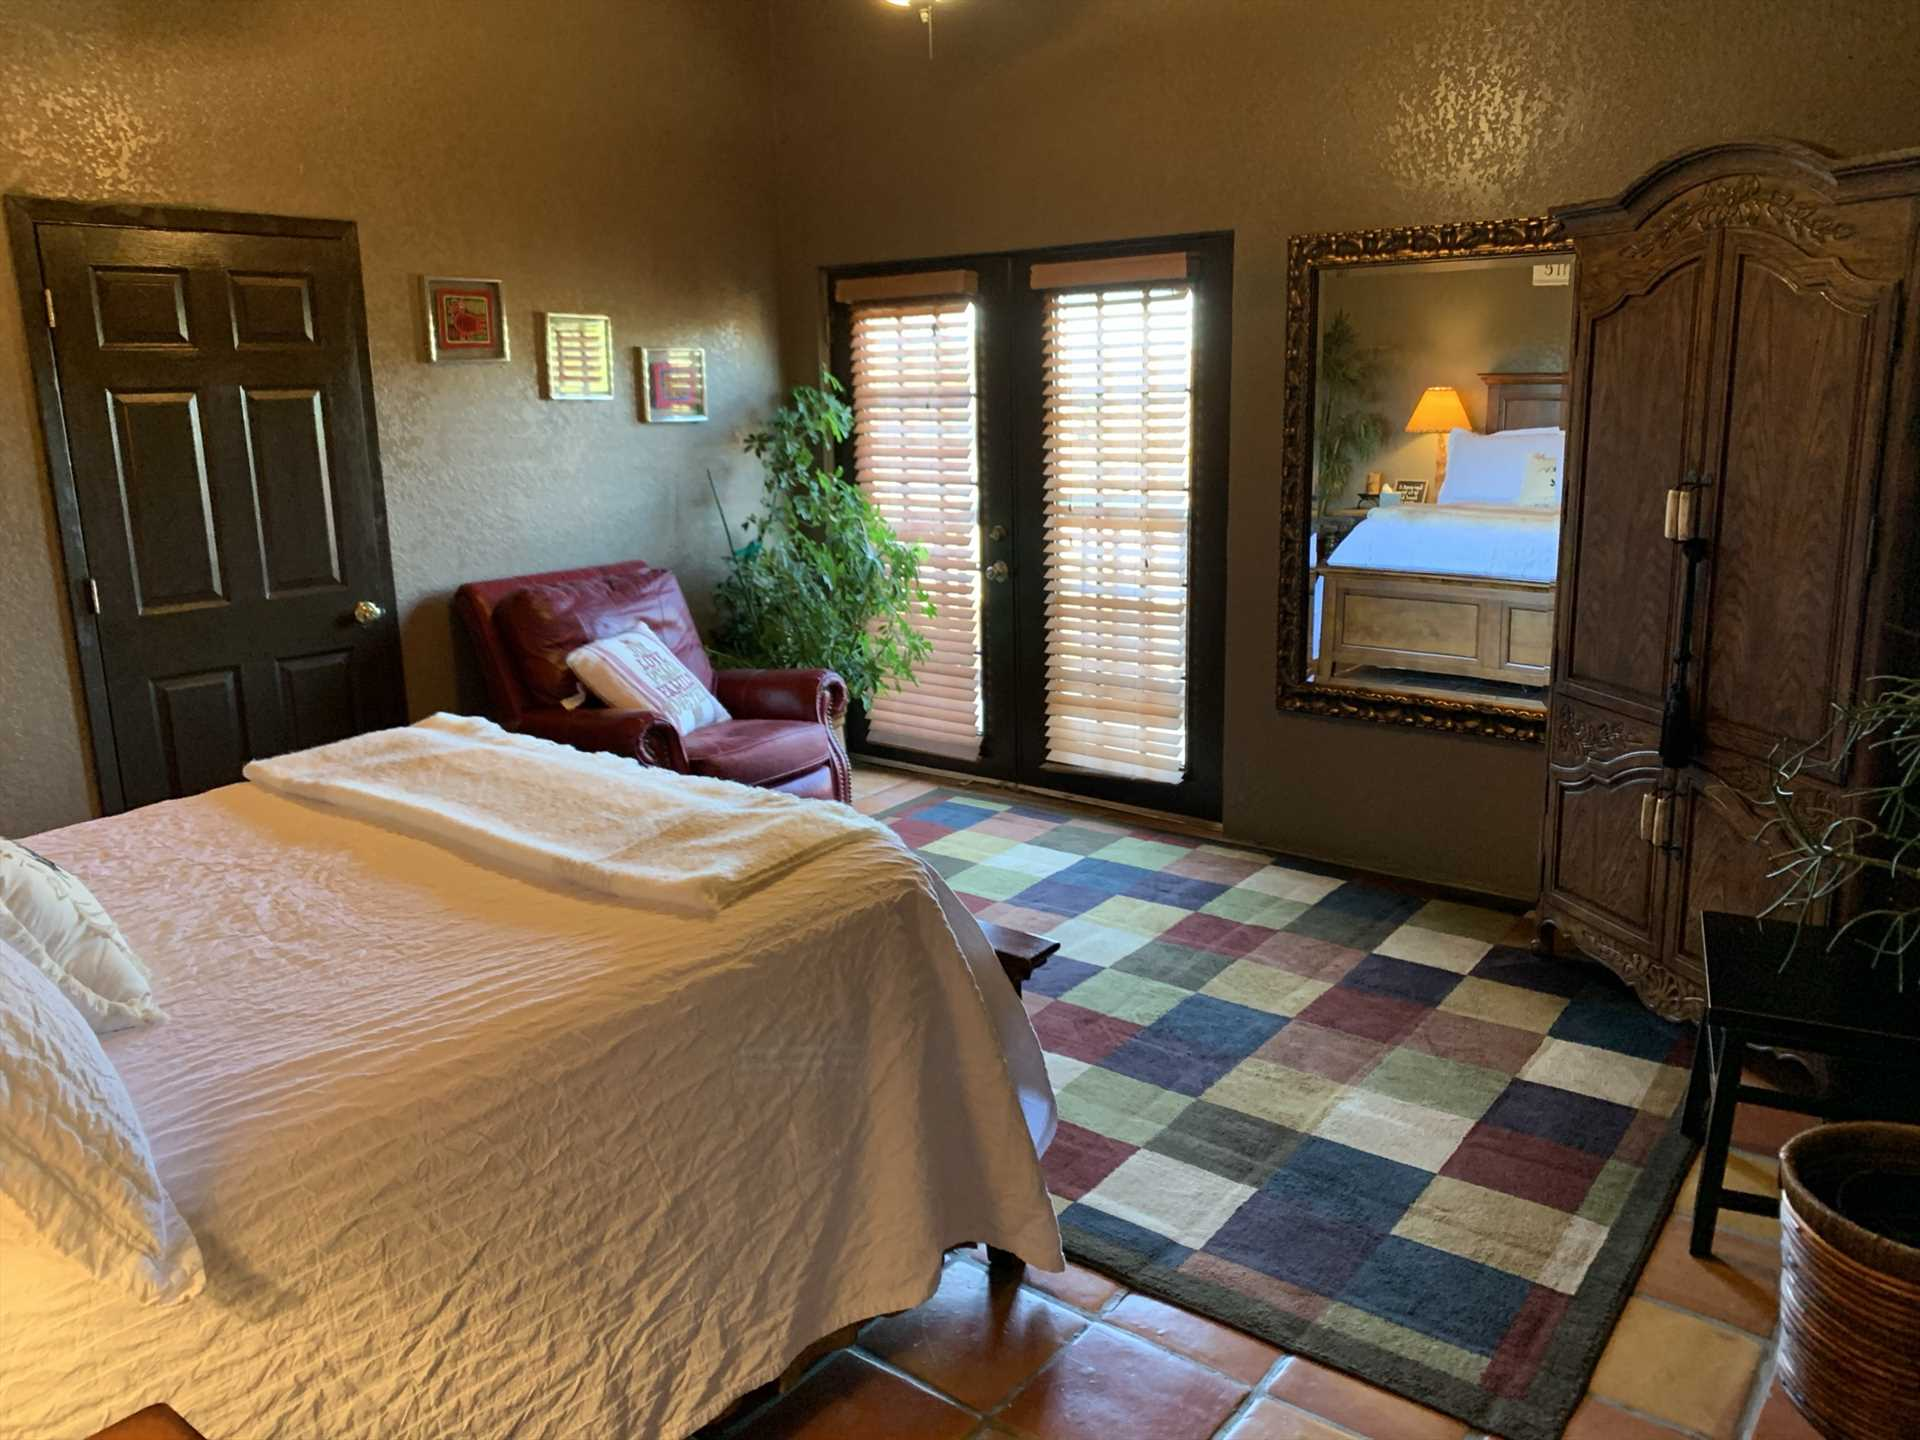 French doors in both the bedroom and living area allow you to let in plenty of natural light, and inspiring Hill Country panoramas.